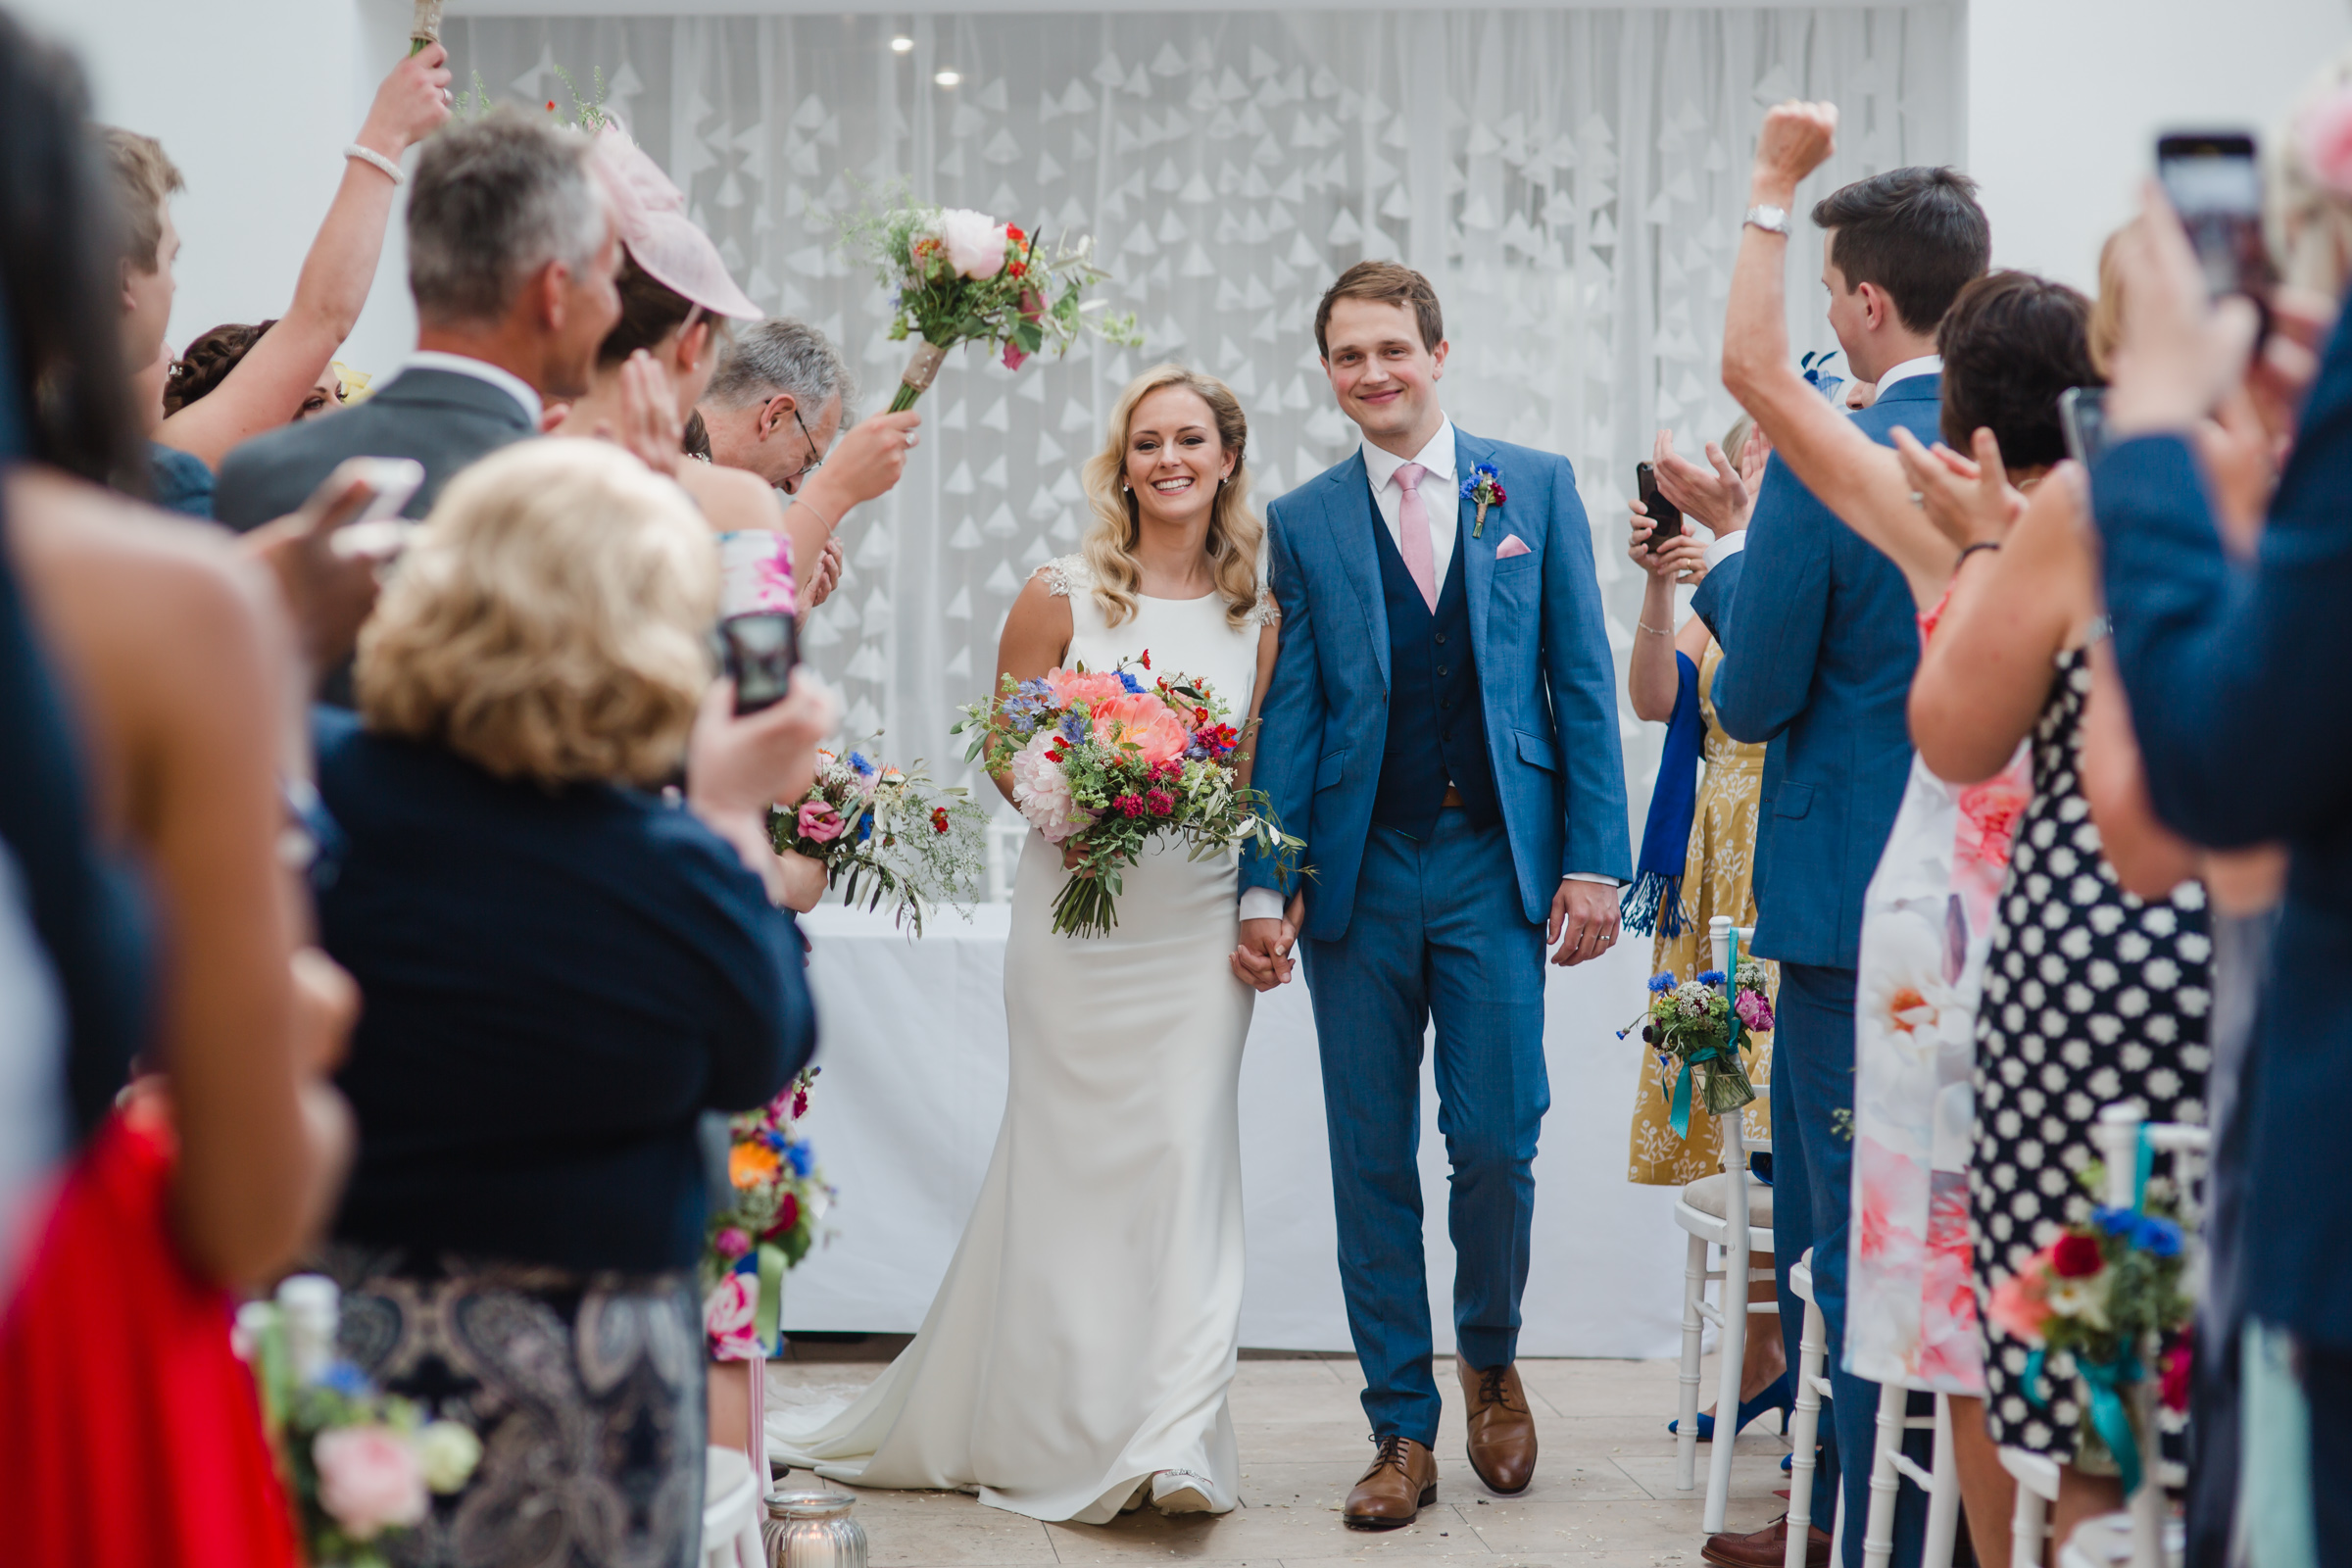 the bride and groom exit down the aisle after their wedding at fazeley studios birmimgham